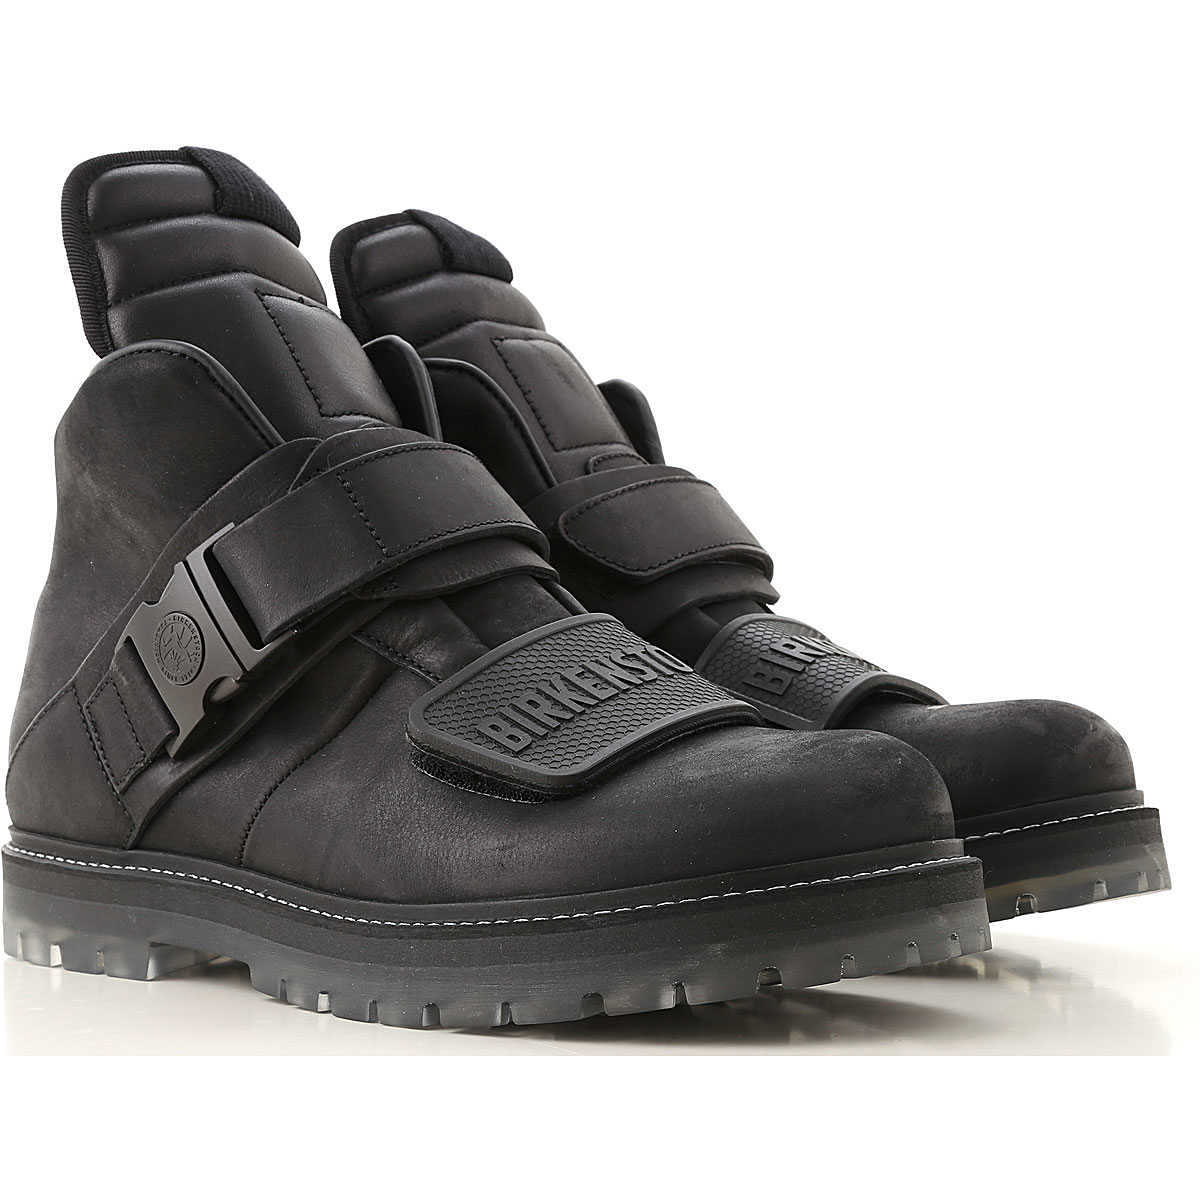 Rick Owens Boots for Men Booties On Sale DK - GOOFASH - Mens BOOTS